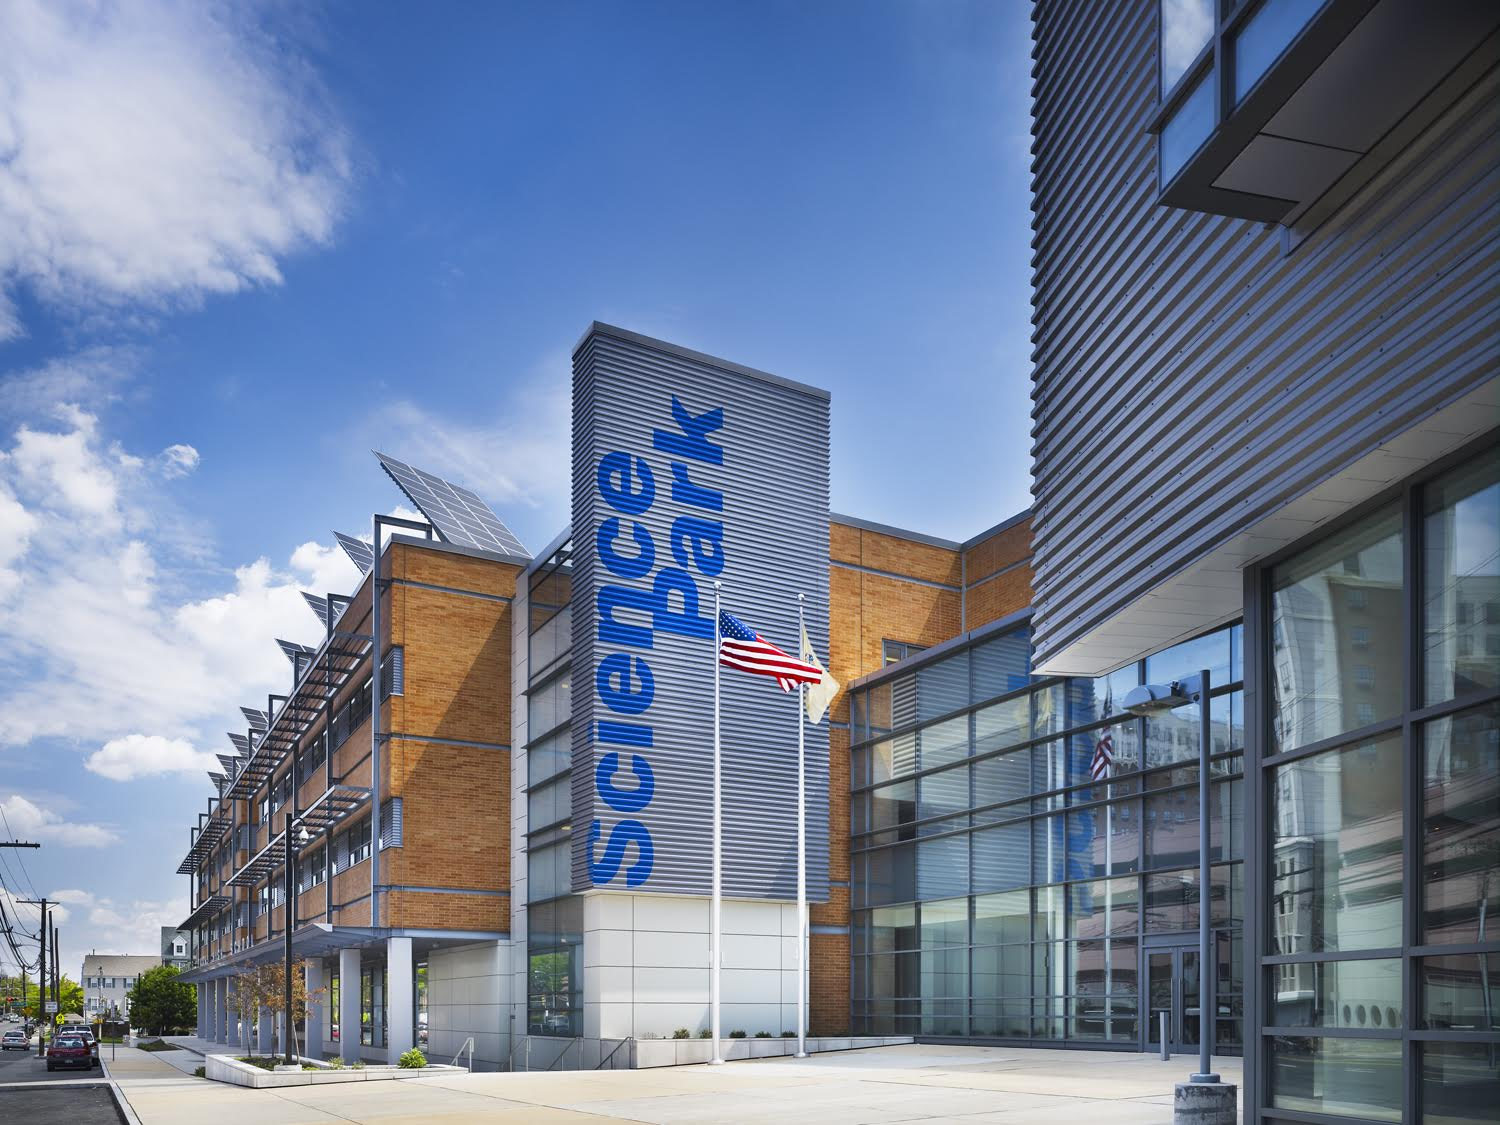 Newark Science Park High School, EYP Architecture & Engineering